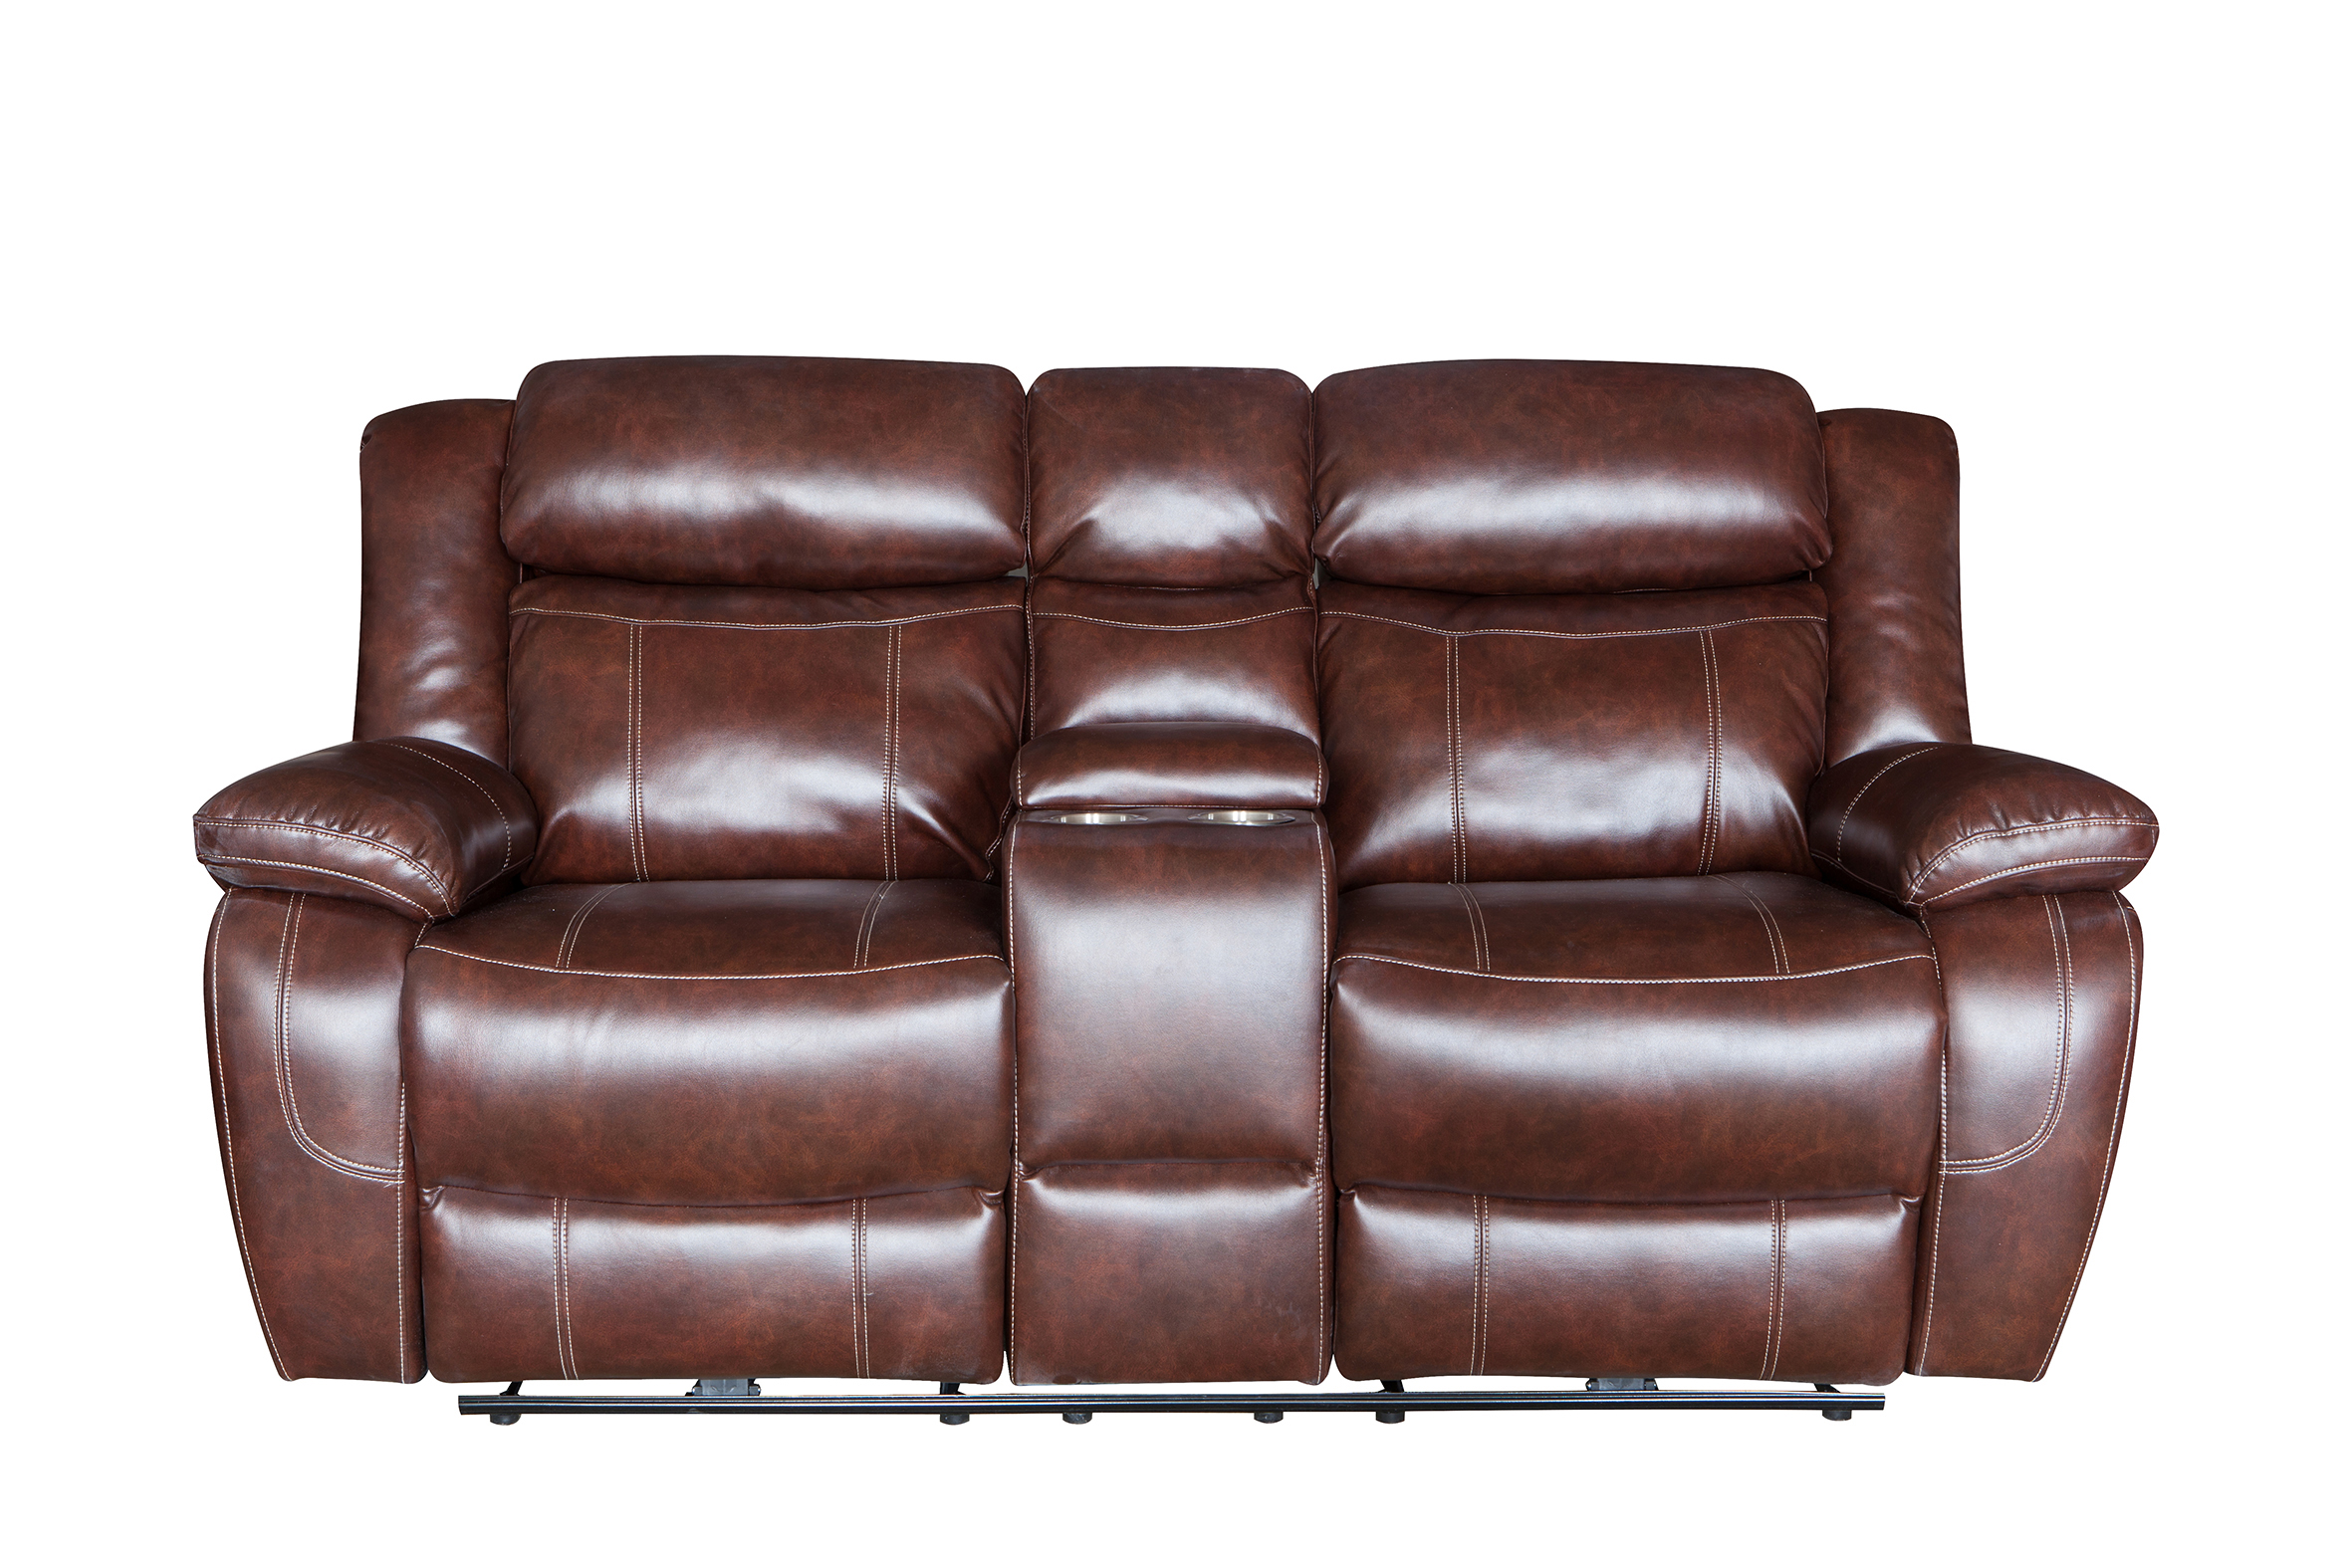 High quality leather home furniture luxury 1 2 3 sofa set